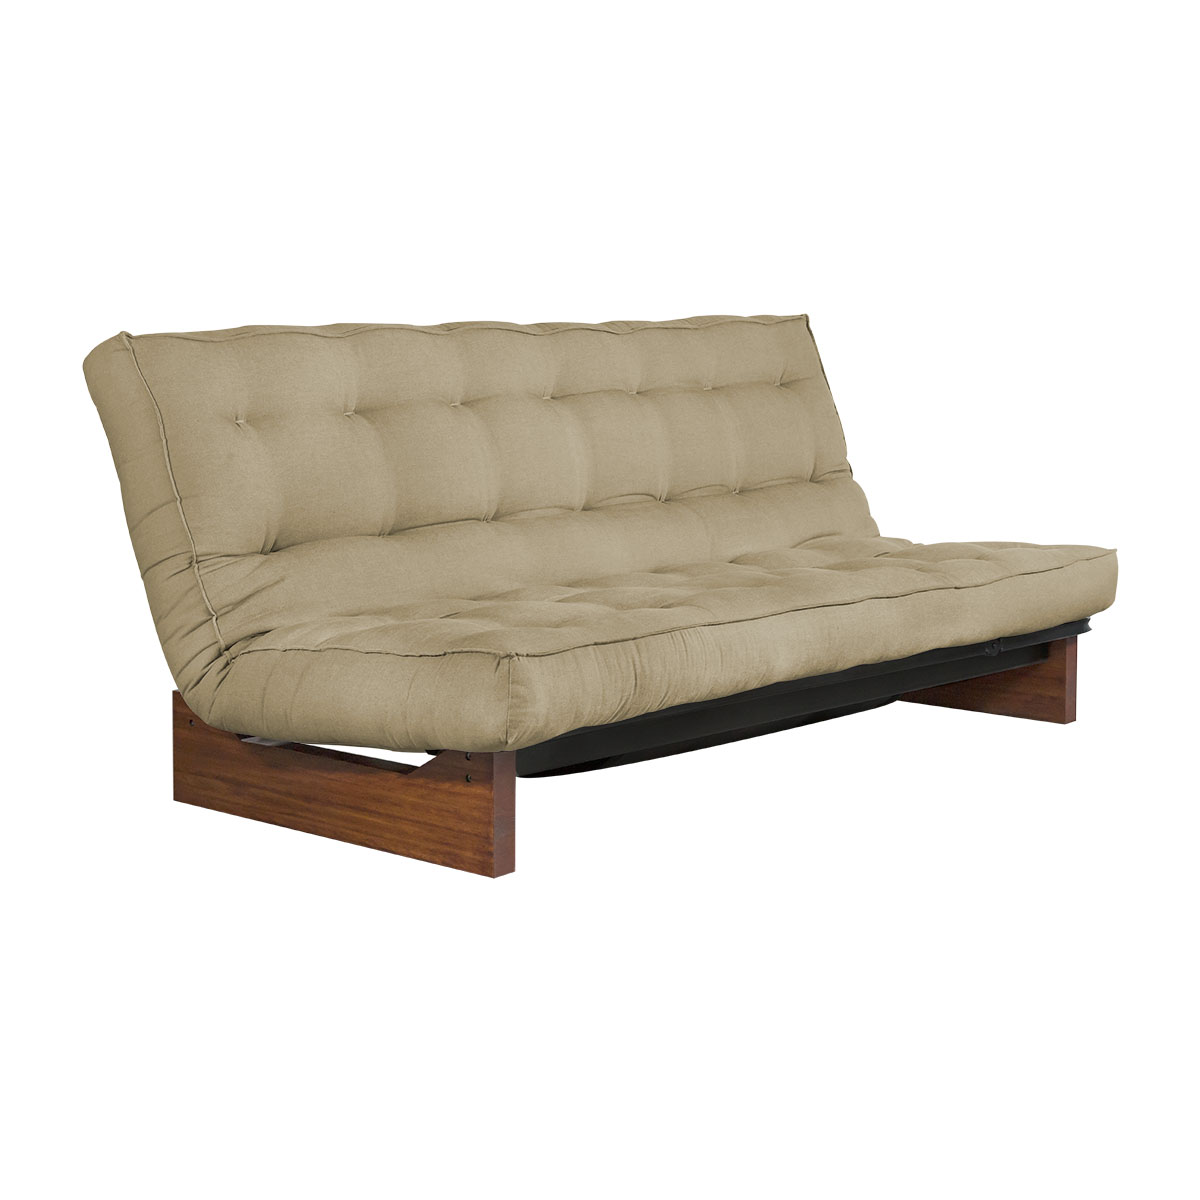 Sofa reclinavel futon company for Sofa cama de dos cuerpos